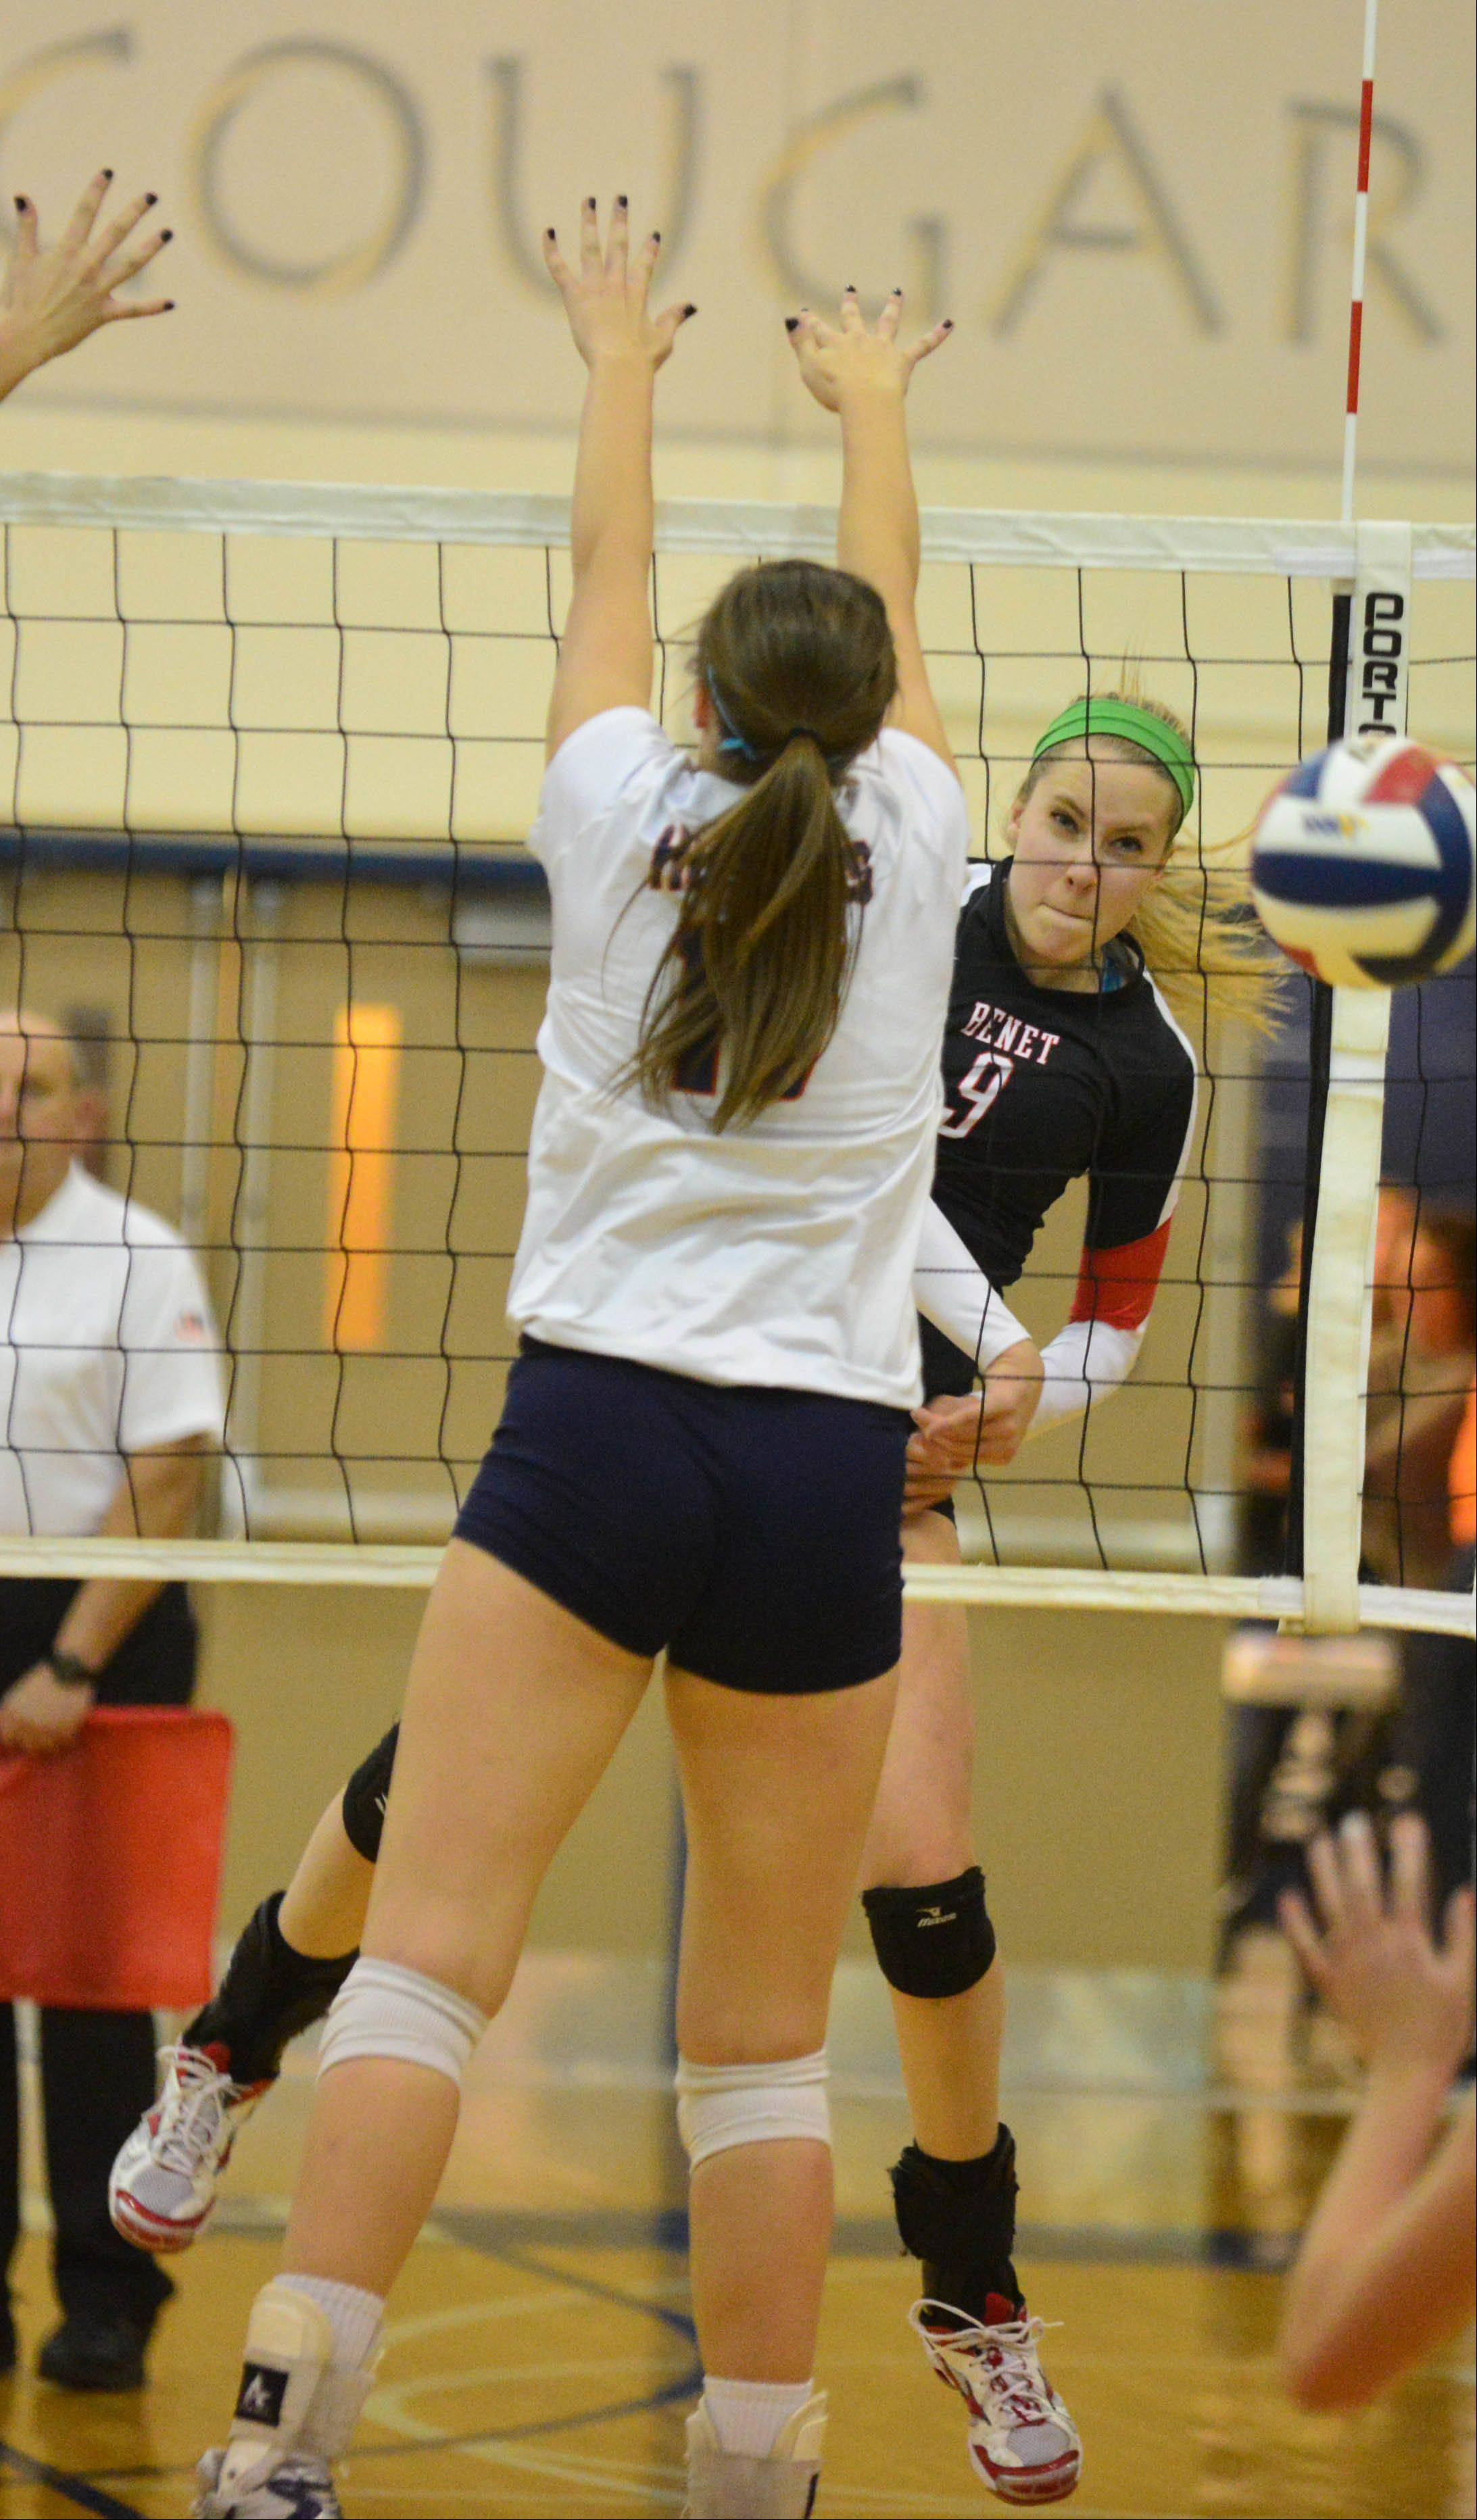 Dana Griffin of Benet watches her spike head towards the ground during theBenet vs. Naperville North Class 4A Plainfield South girls volleyball sectional final Thursday.